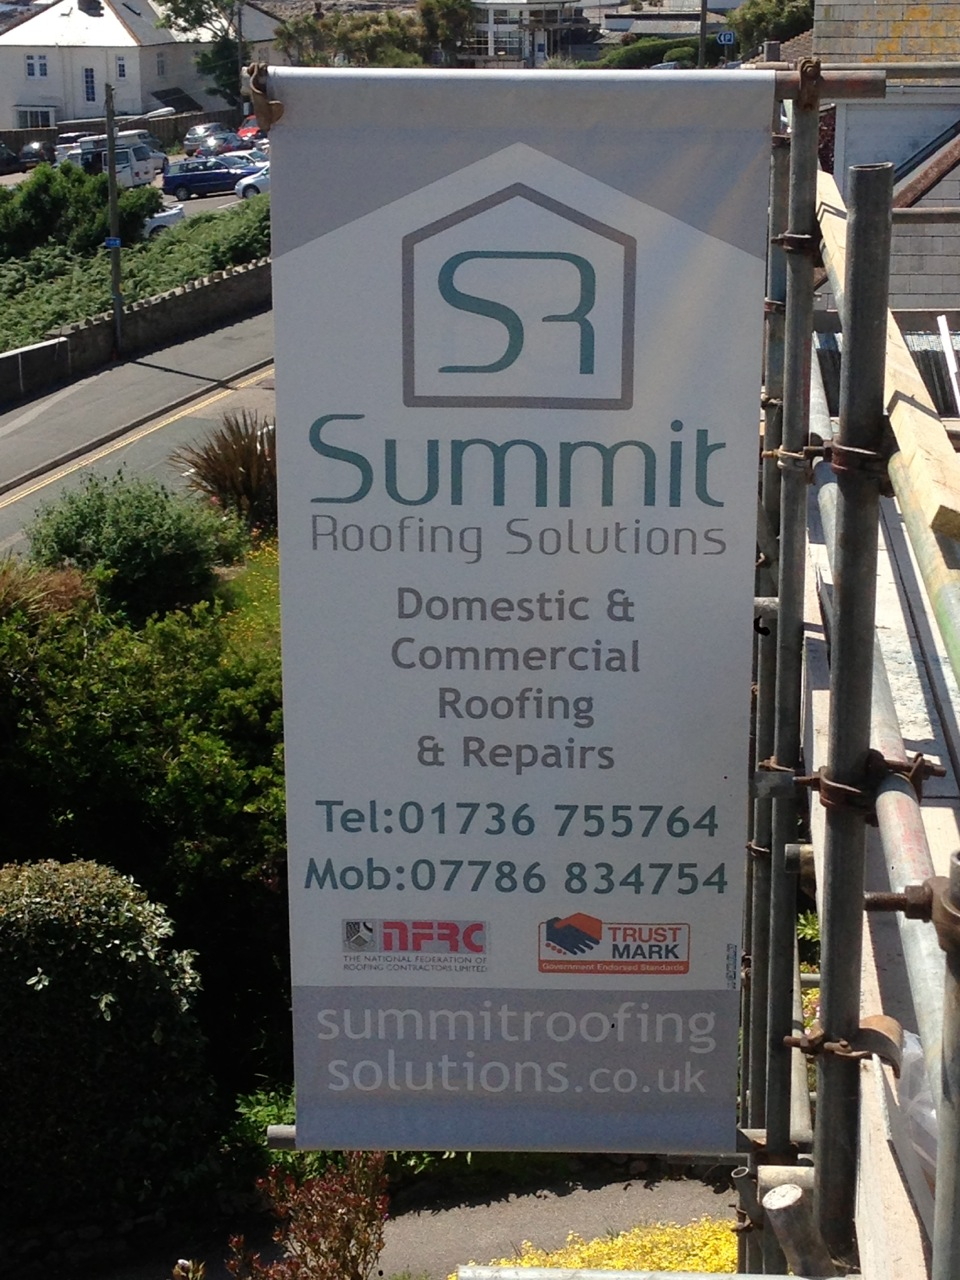 cornwall roofing work banner – new for 2014